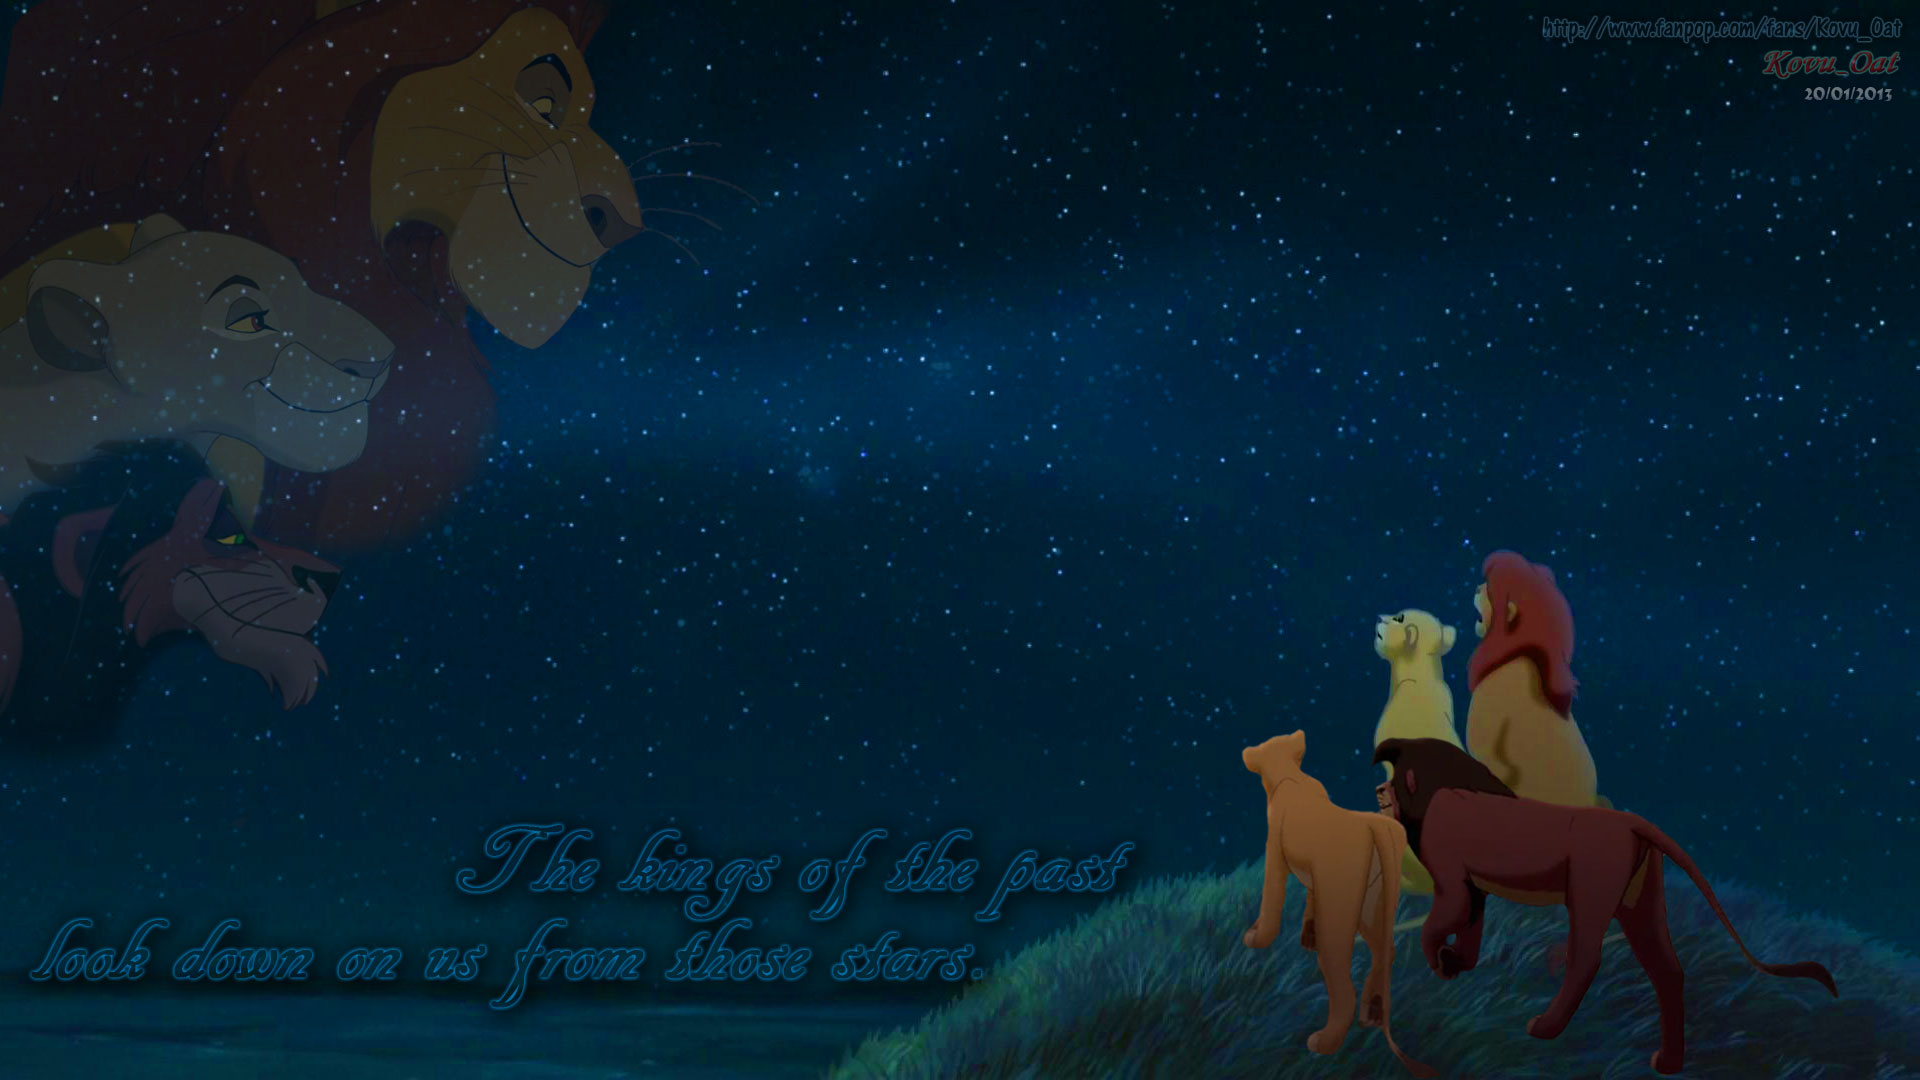 The Lion King Images Lion King Family Old Current Next - Lion King Next Generation , HD Wallpaper & Backgrounds